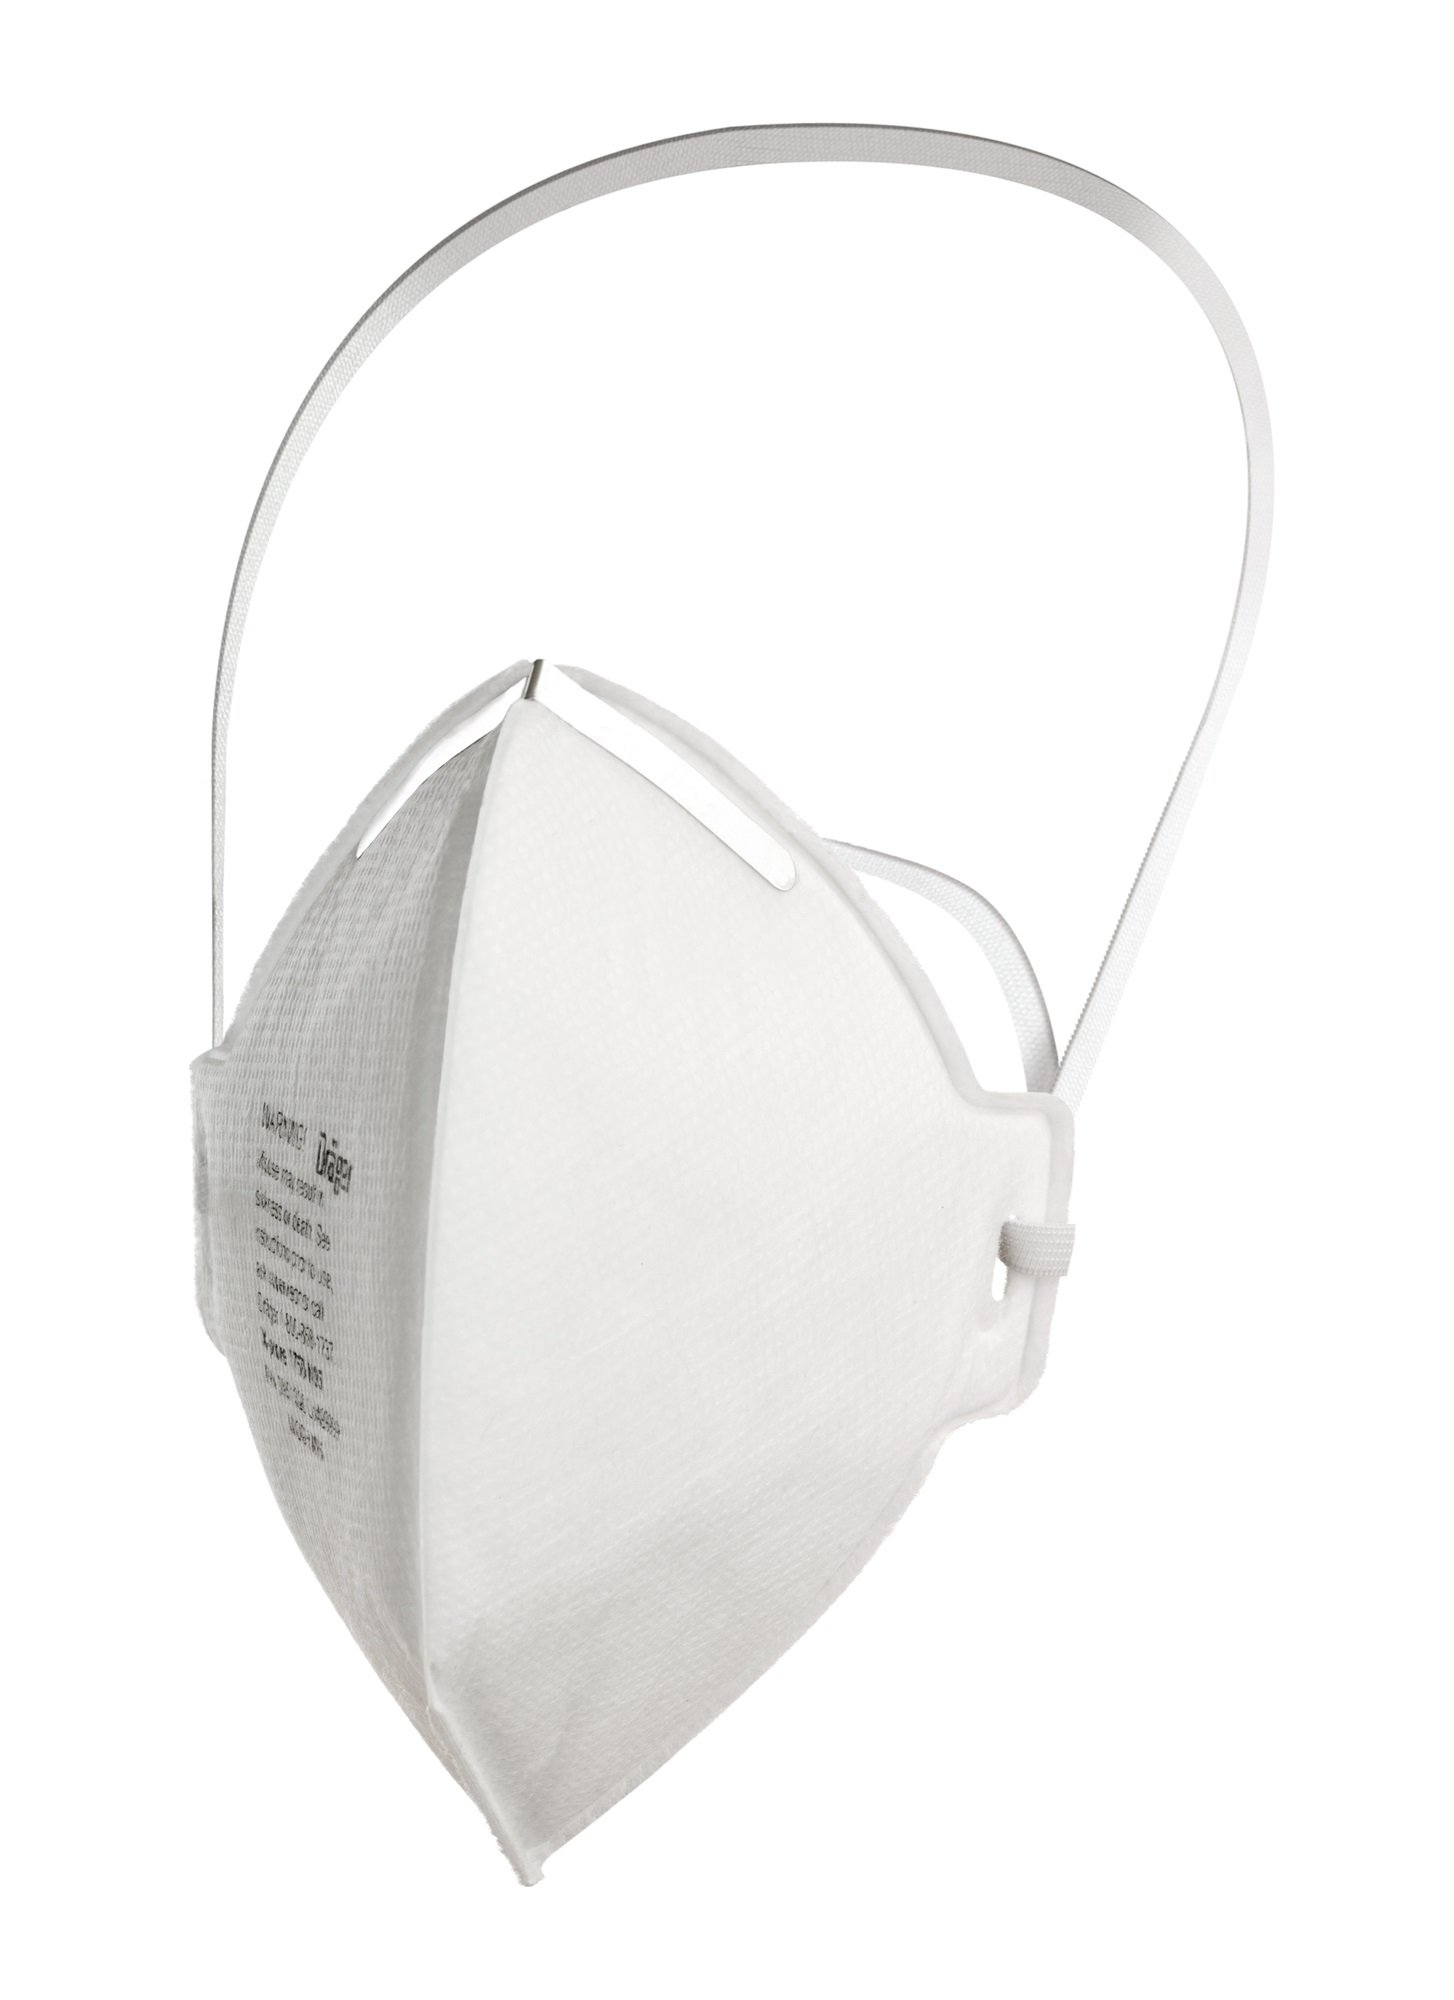 Dräger X-plore 1750 N95 Respirator mask | Non-valved, Folded, NIOSH-Certified | Against dust, Pollen and Other Particles | 20 piececs